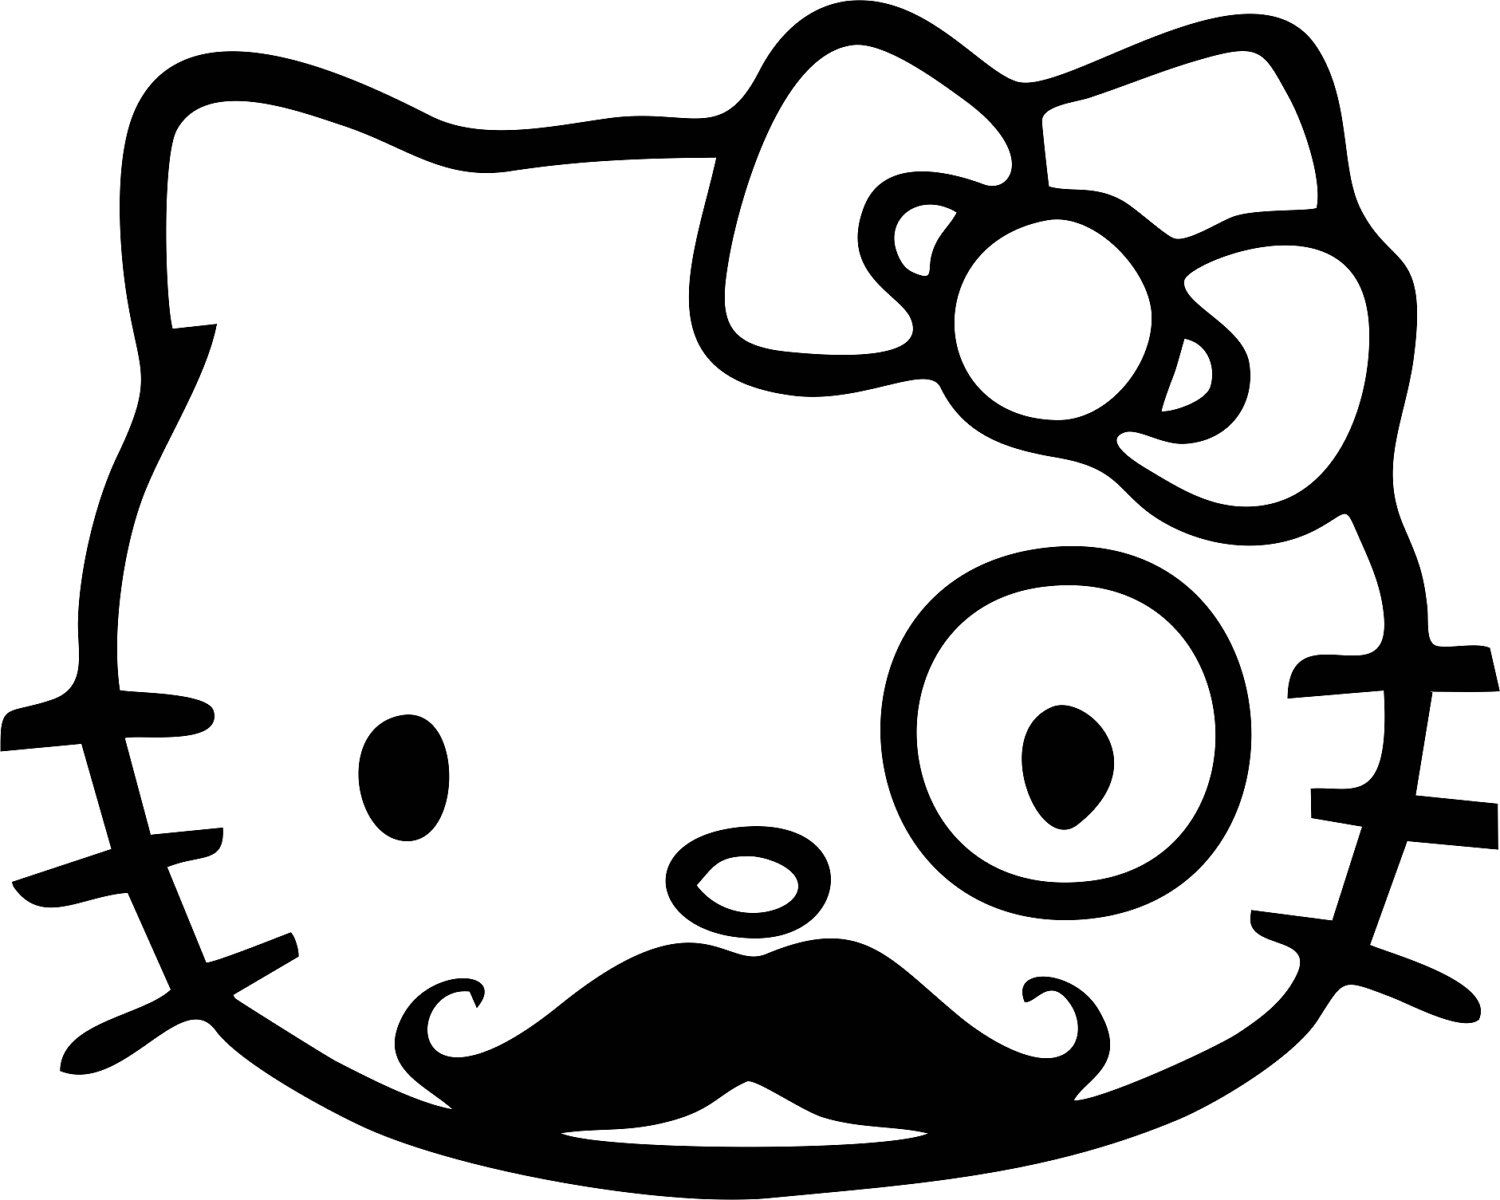 cute hello kitty monocle and mustache vinyl decal sticker for